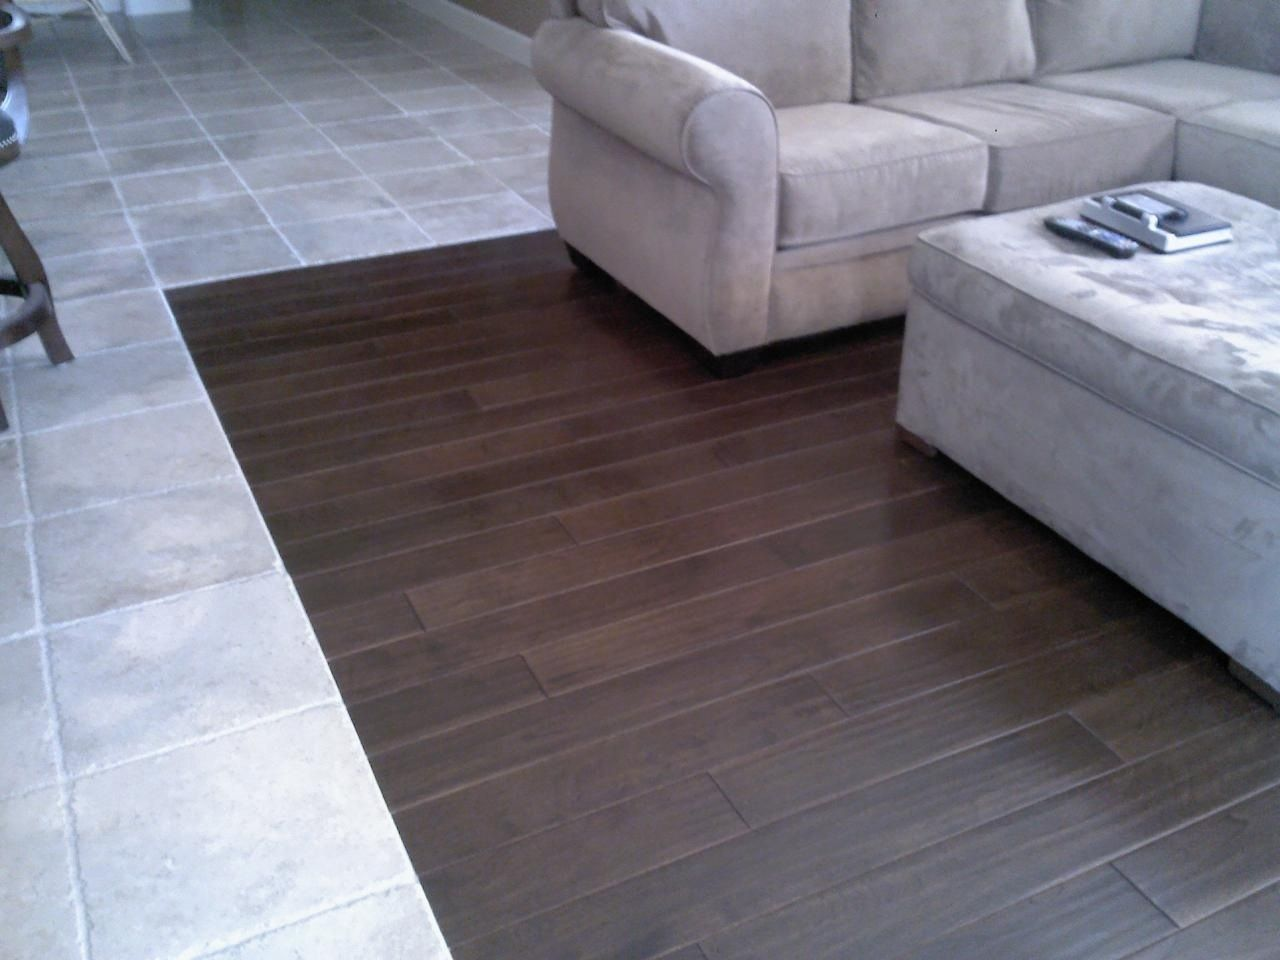 Tile To Wood Floor Transition Ideas Projects For The Home